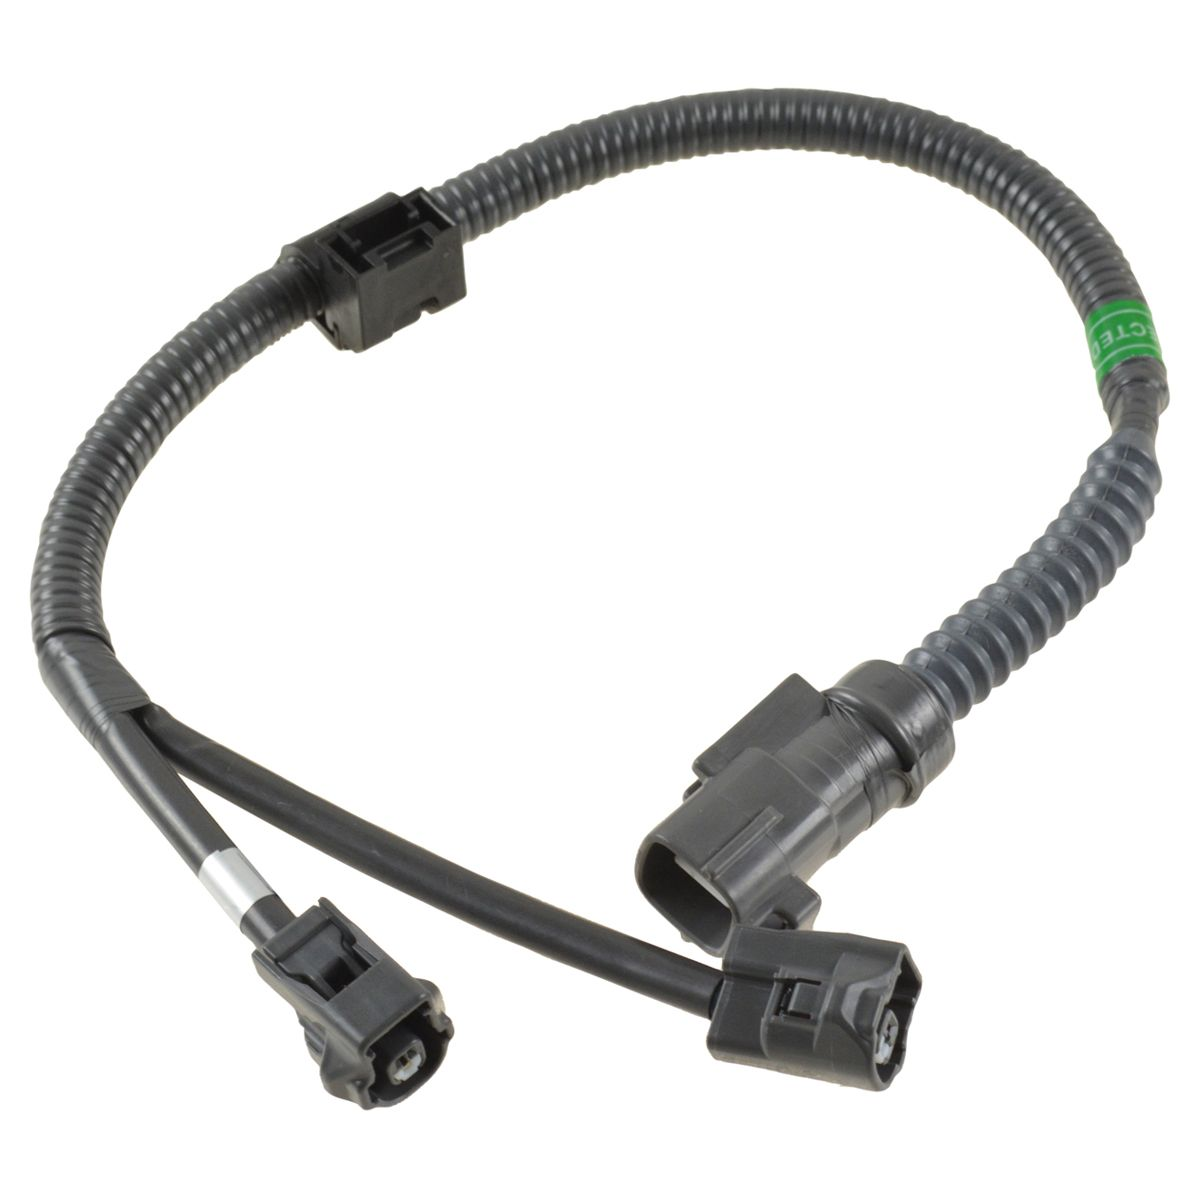 hight resolution of oem engine knock sensor wiring harness pigtail plug for 3 0 toyota lexus new